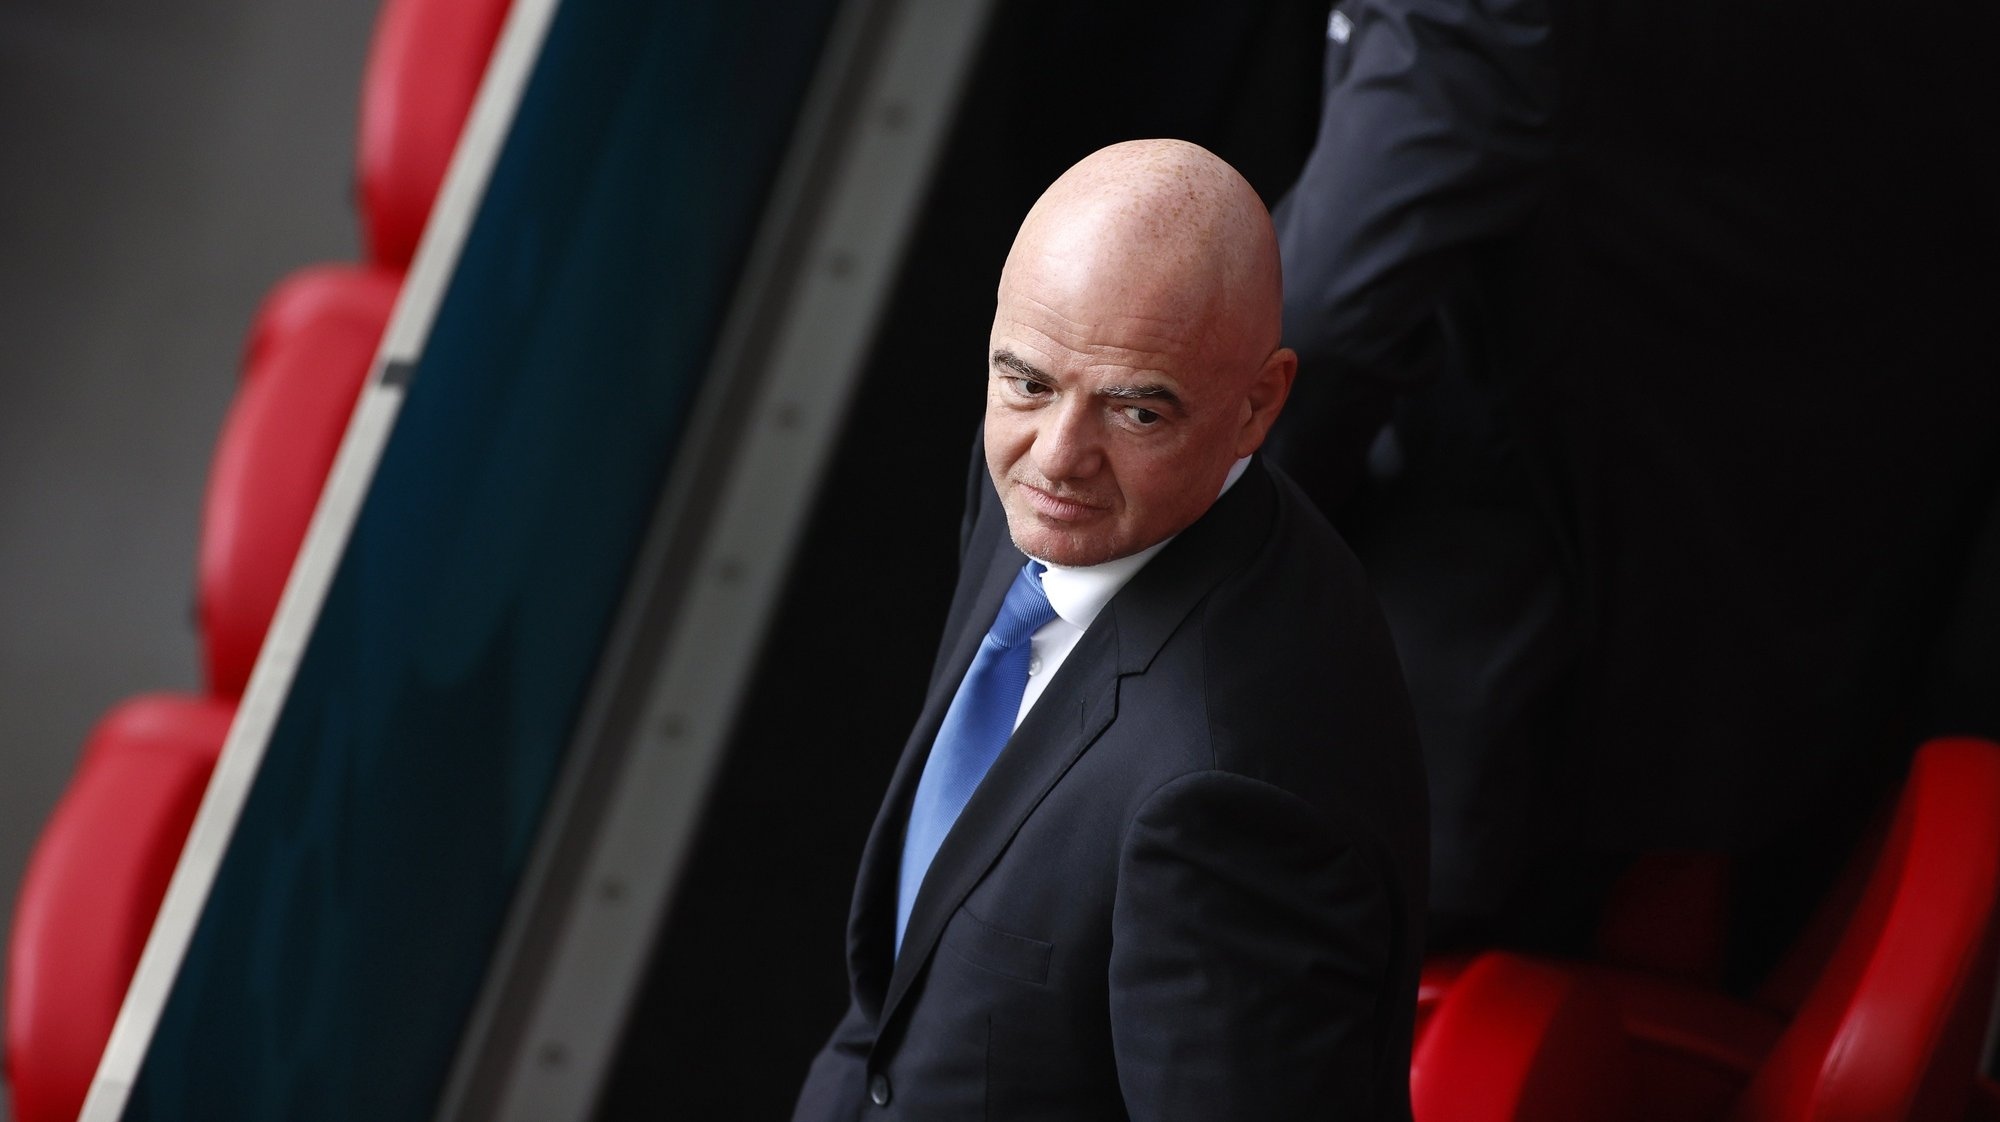 epa09280804 FIFA president Gianni Infantino attends the UEFA EURO 2020 preliminary round group C soccer match between the Netherlands and Austria in Amsterdam, Netherlands, 17 June 2021.  EPA/Koen van Weel / POOL (RESTRICTIONS: For editorial news reporting purposes only. Images must appear as still images and must not emulate match action video footage. Photographs published in online publications shall have an interval of at least 20 seconds between the posting.)